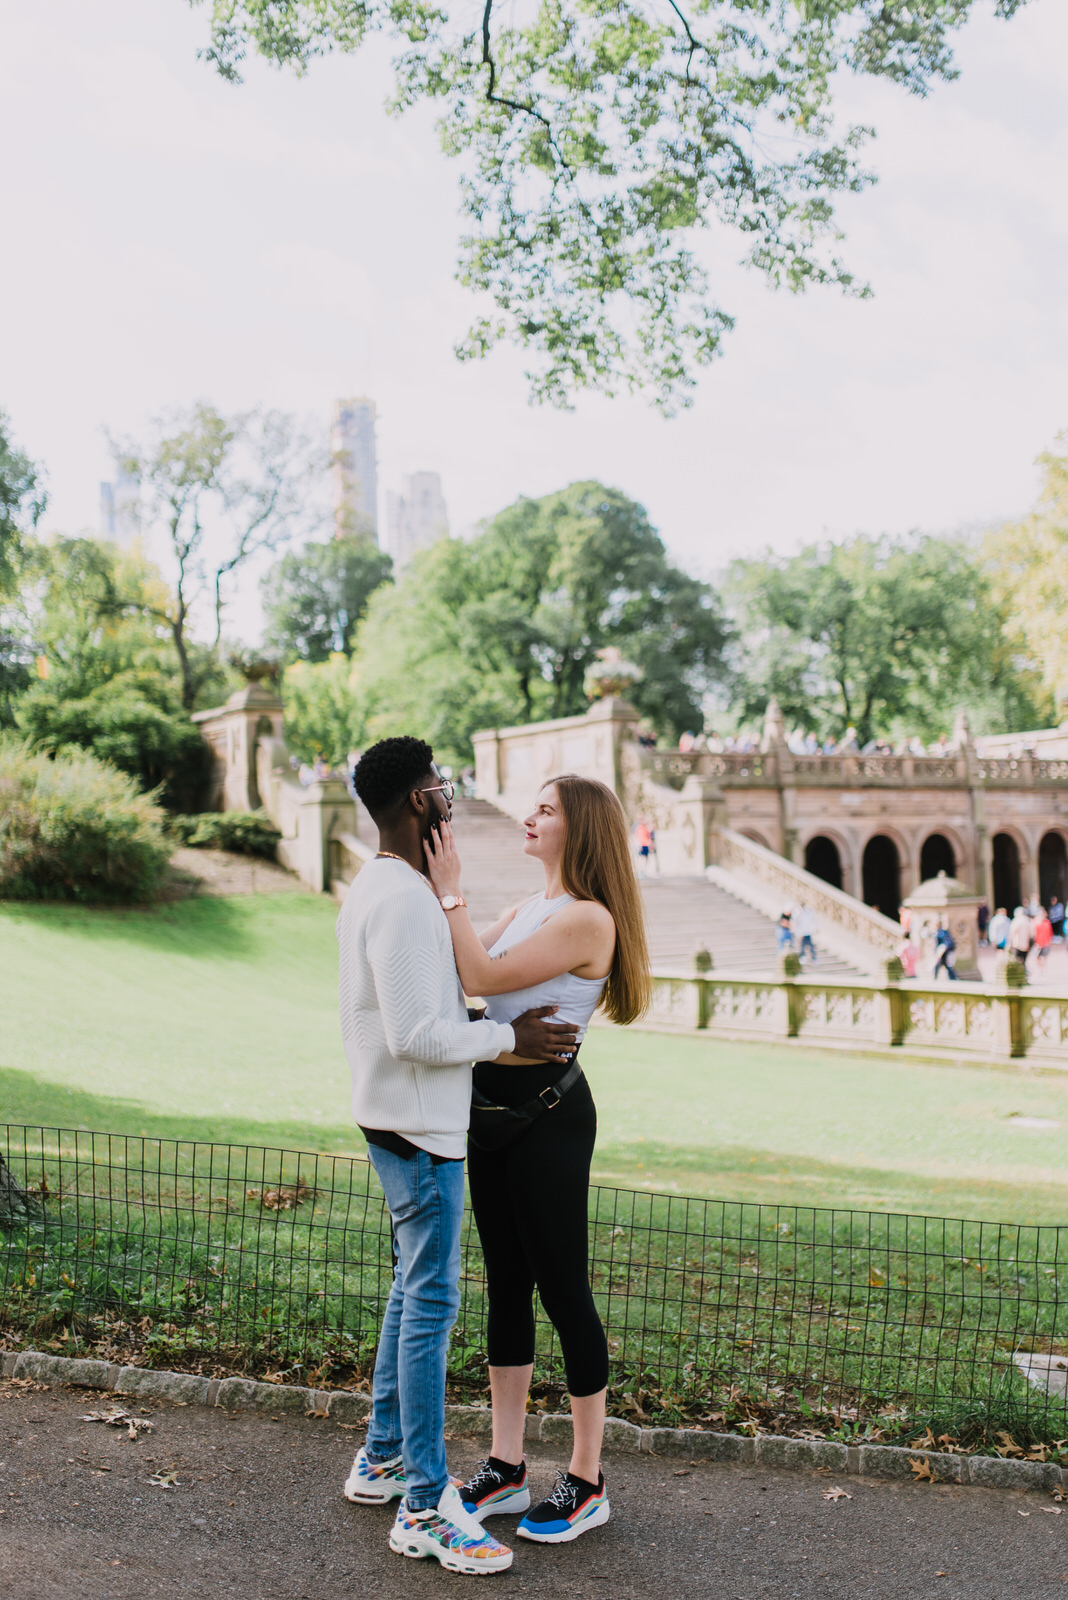 central park engagement shoot, NYC wedding photographer, NYC elopement, elopement photographer New York (16).jpg